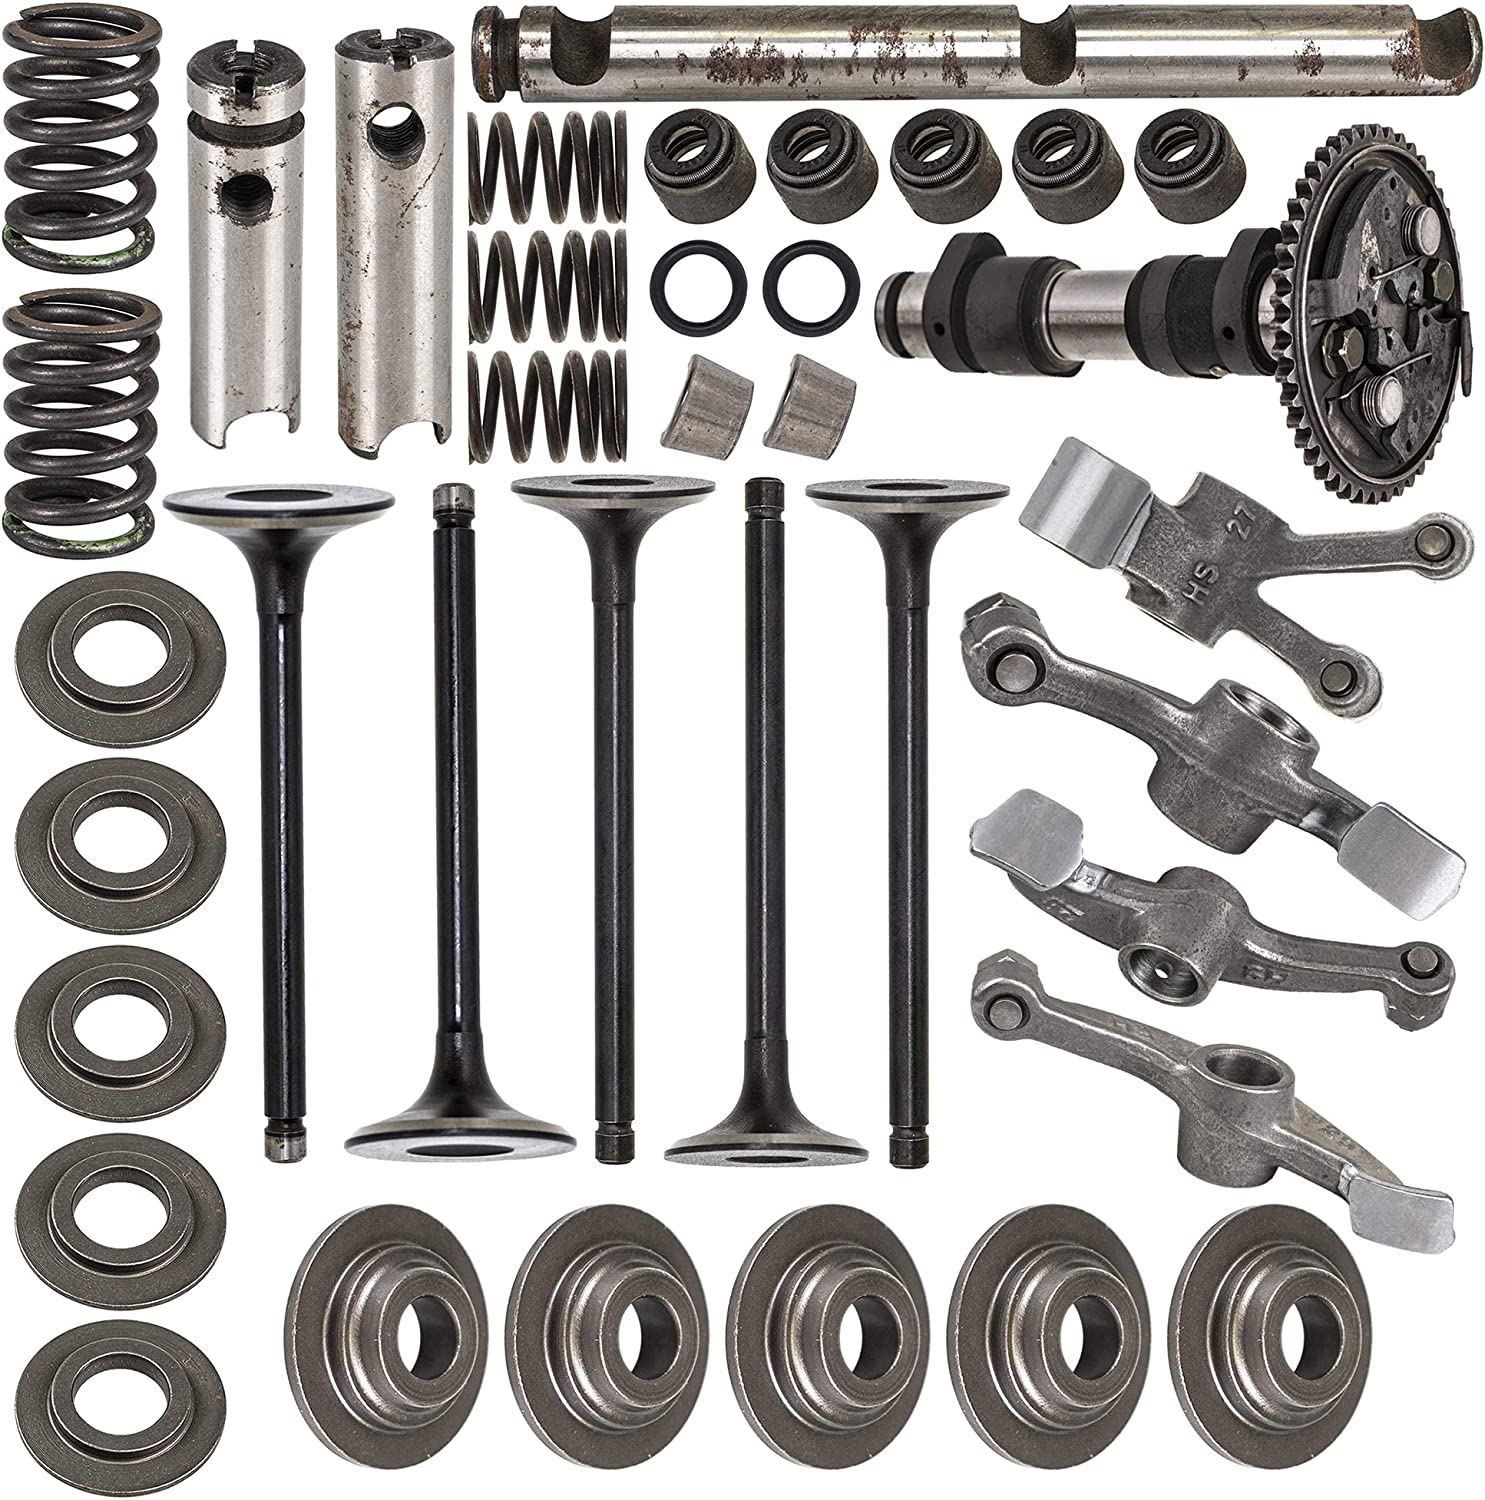 NICHE 660cc Cylinder Head Rebuild Kit Valve Camshaft Rocker Arm For 2002-2008 Yamaha Grizzly Rhino 660